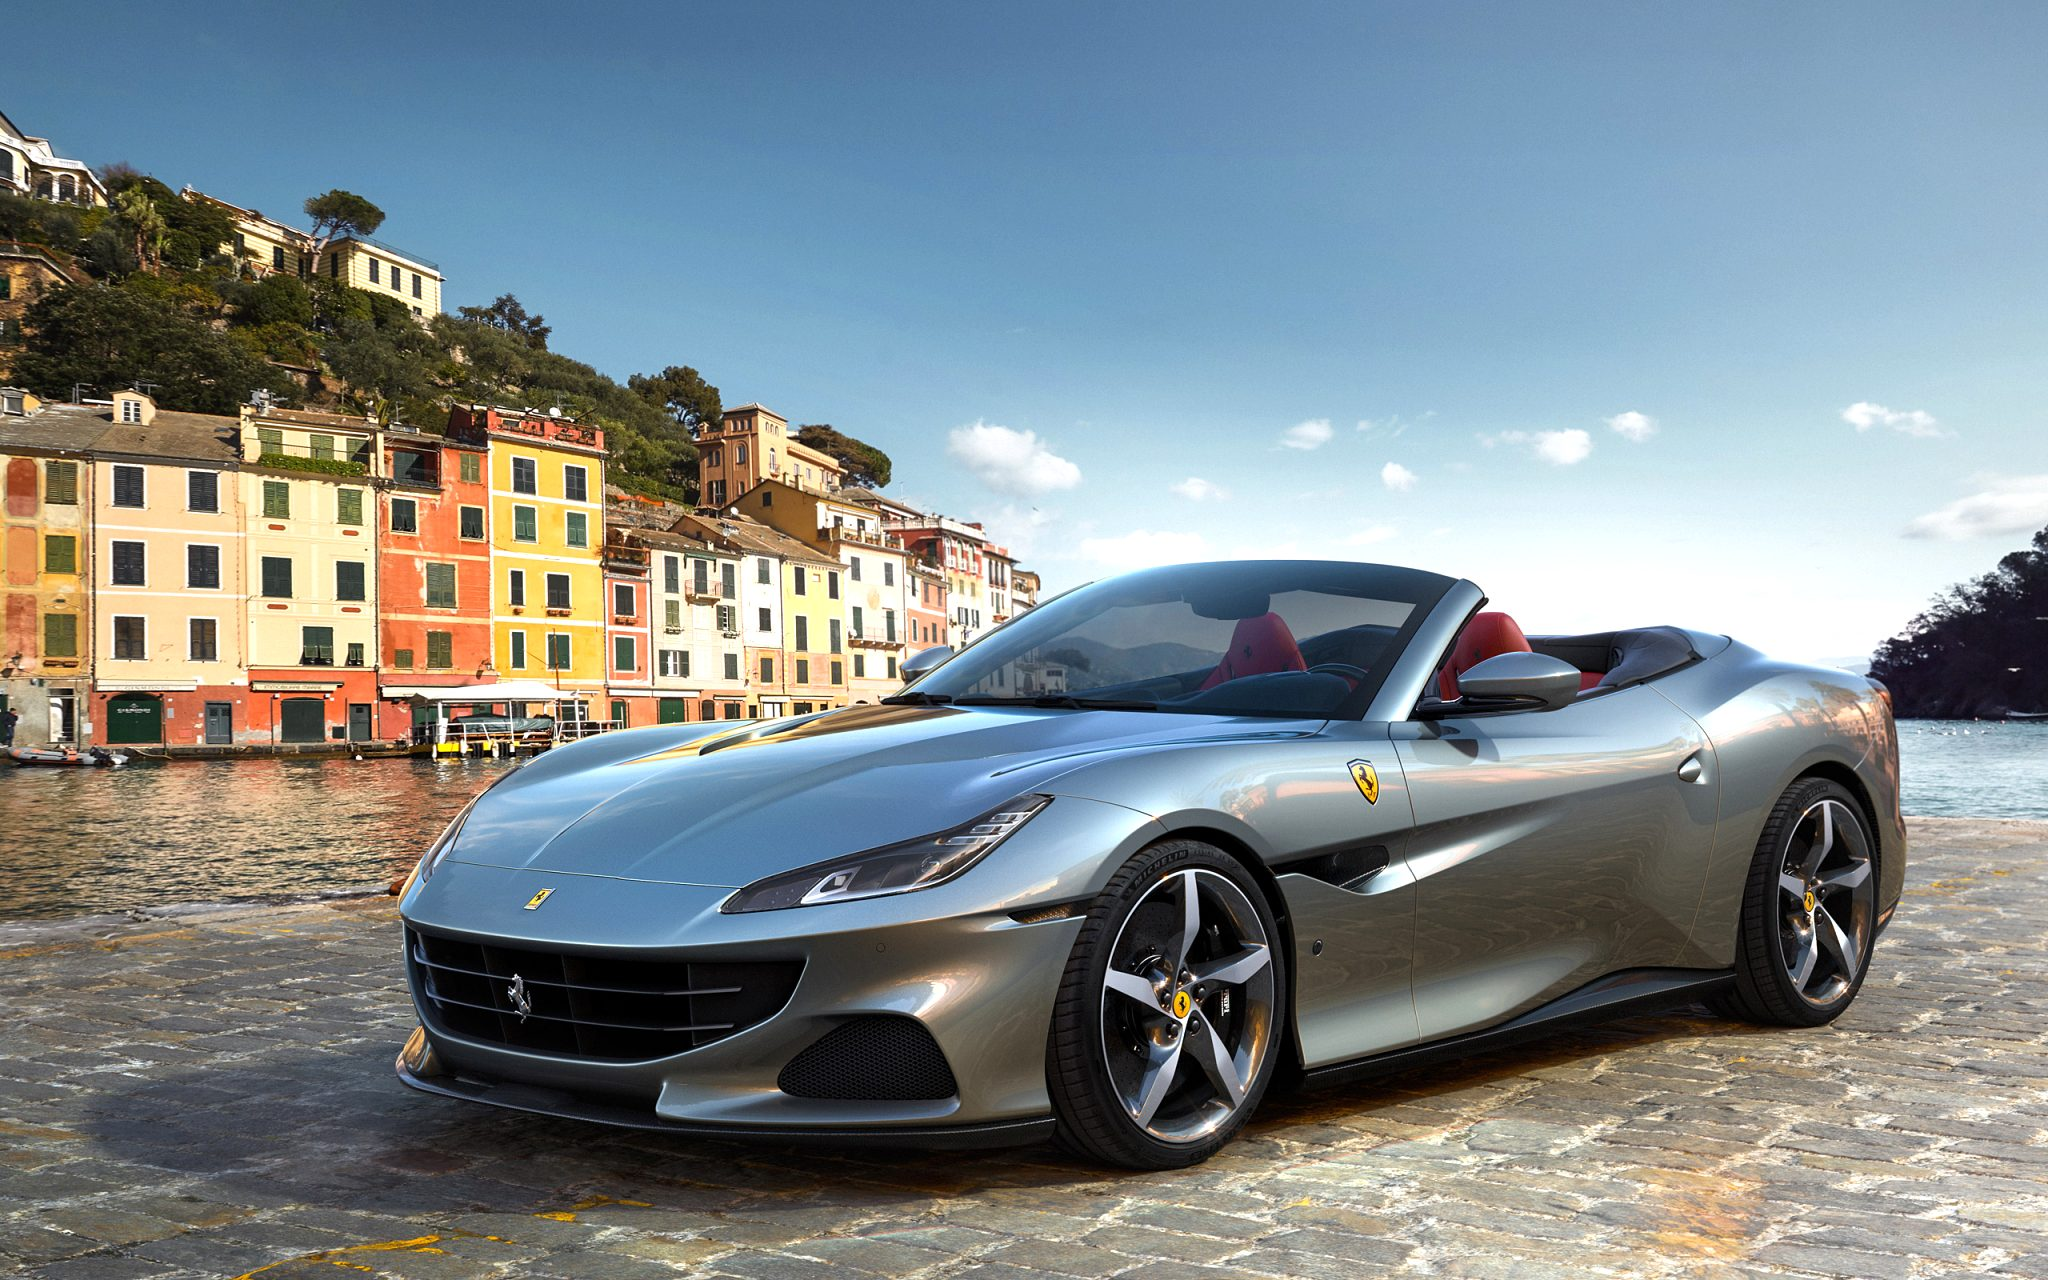 2021 ferrari types Specs and Review